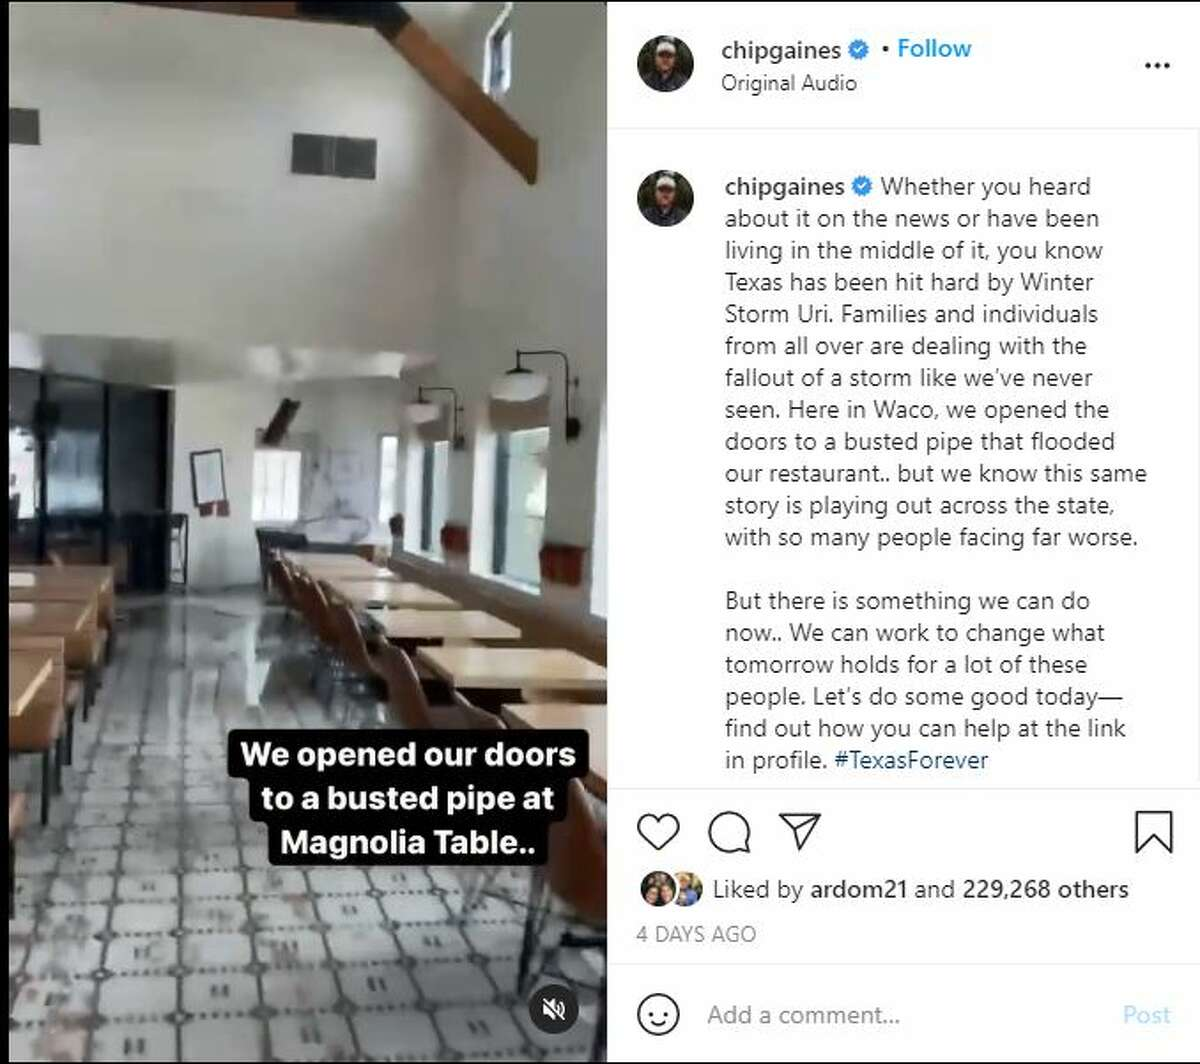 Chip and Joanna Gaines Magnolia Table restaurant suffered water damage from ruptured pipes during Winter Storm Uri, shown in Chip Gaines' Instagram video.